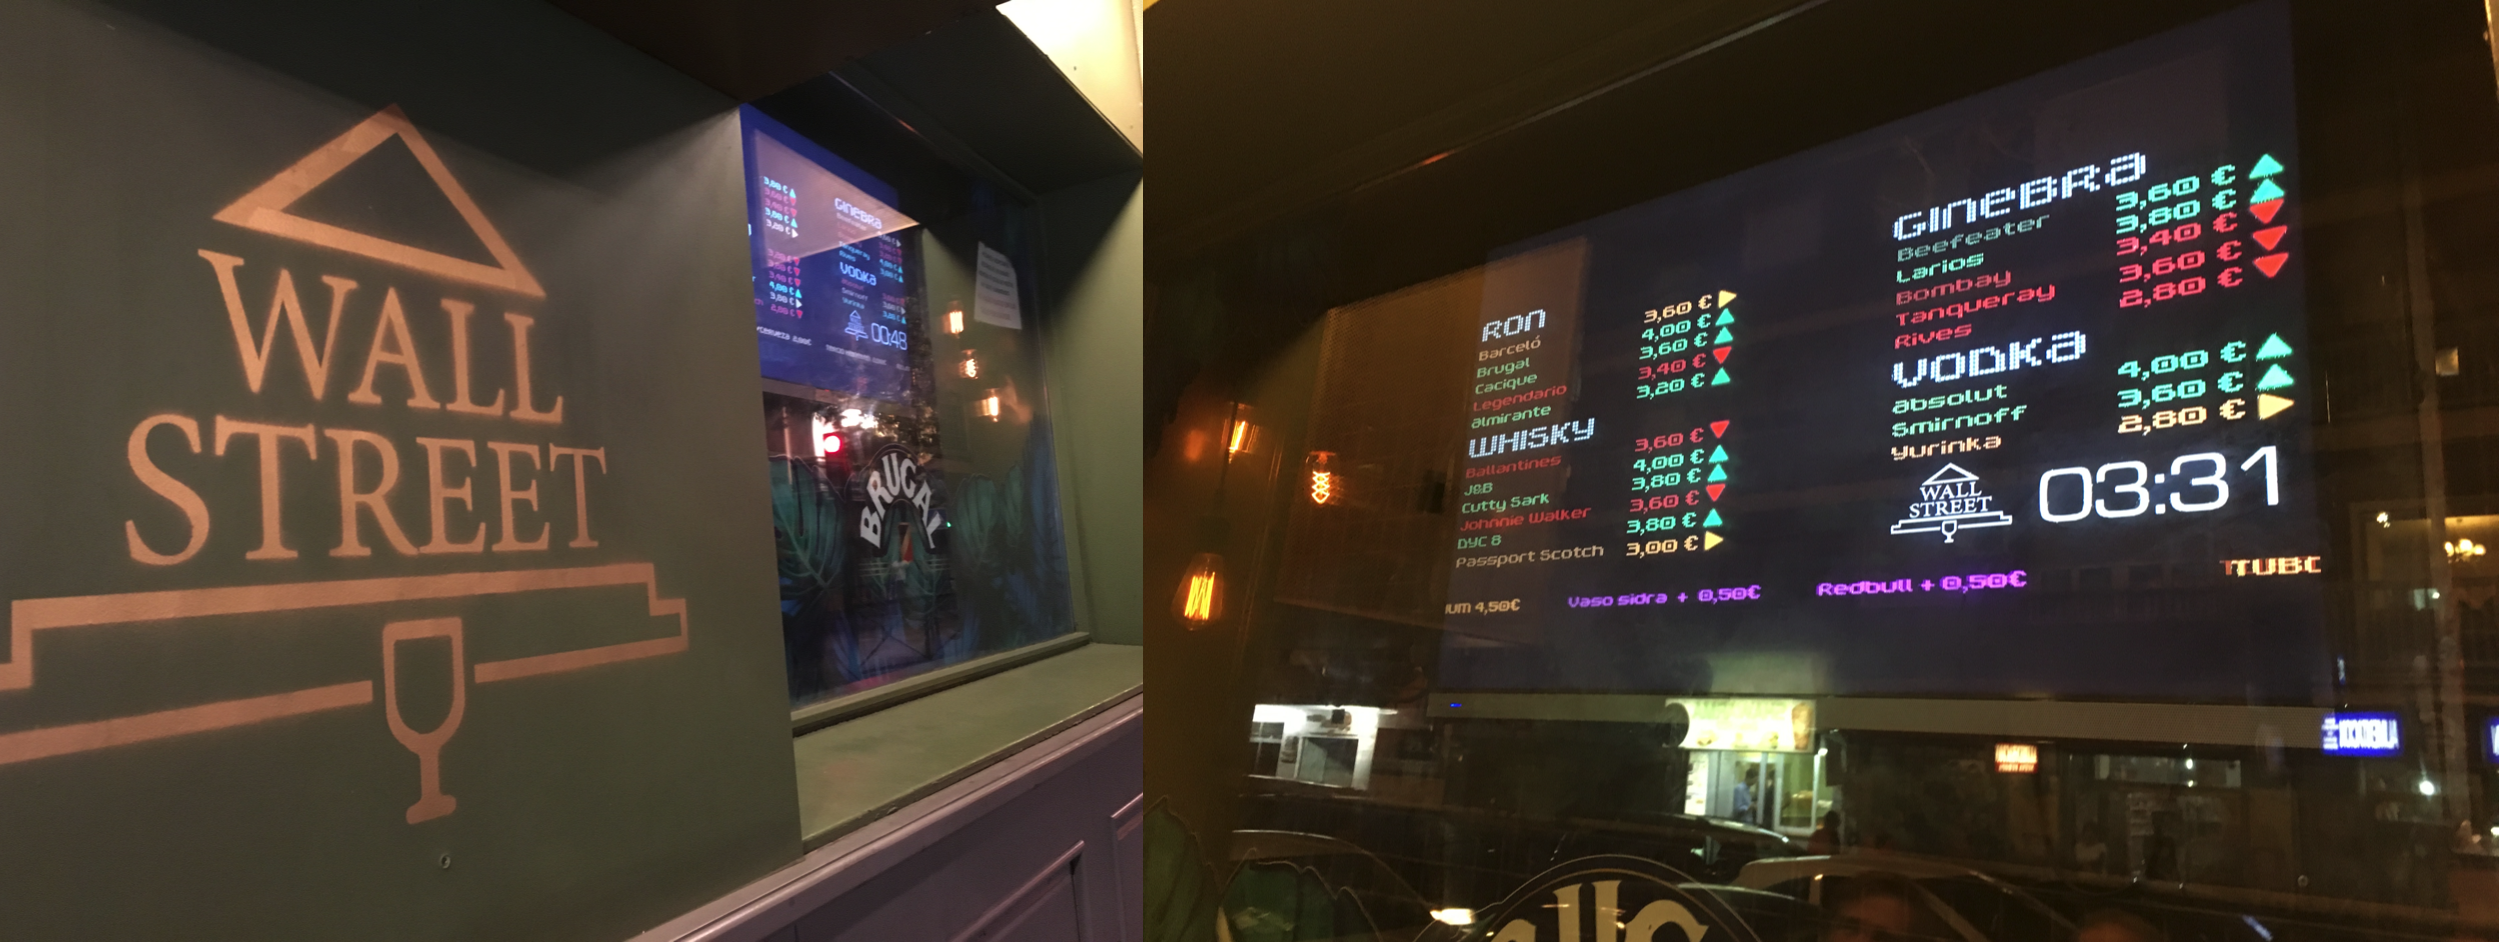 The digital signs in the wallstreet bar